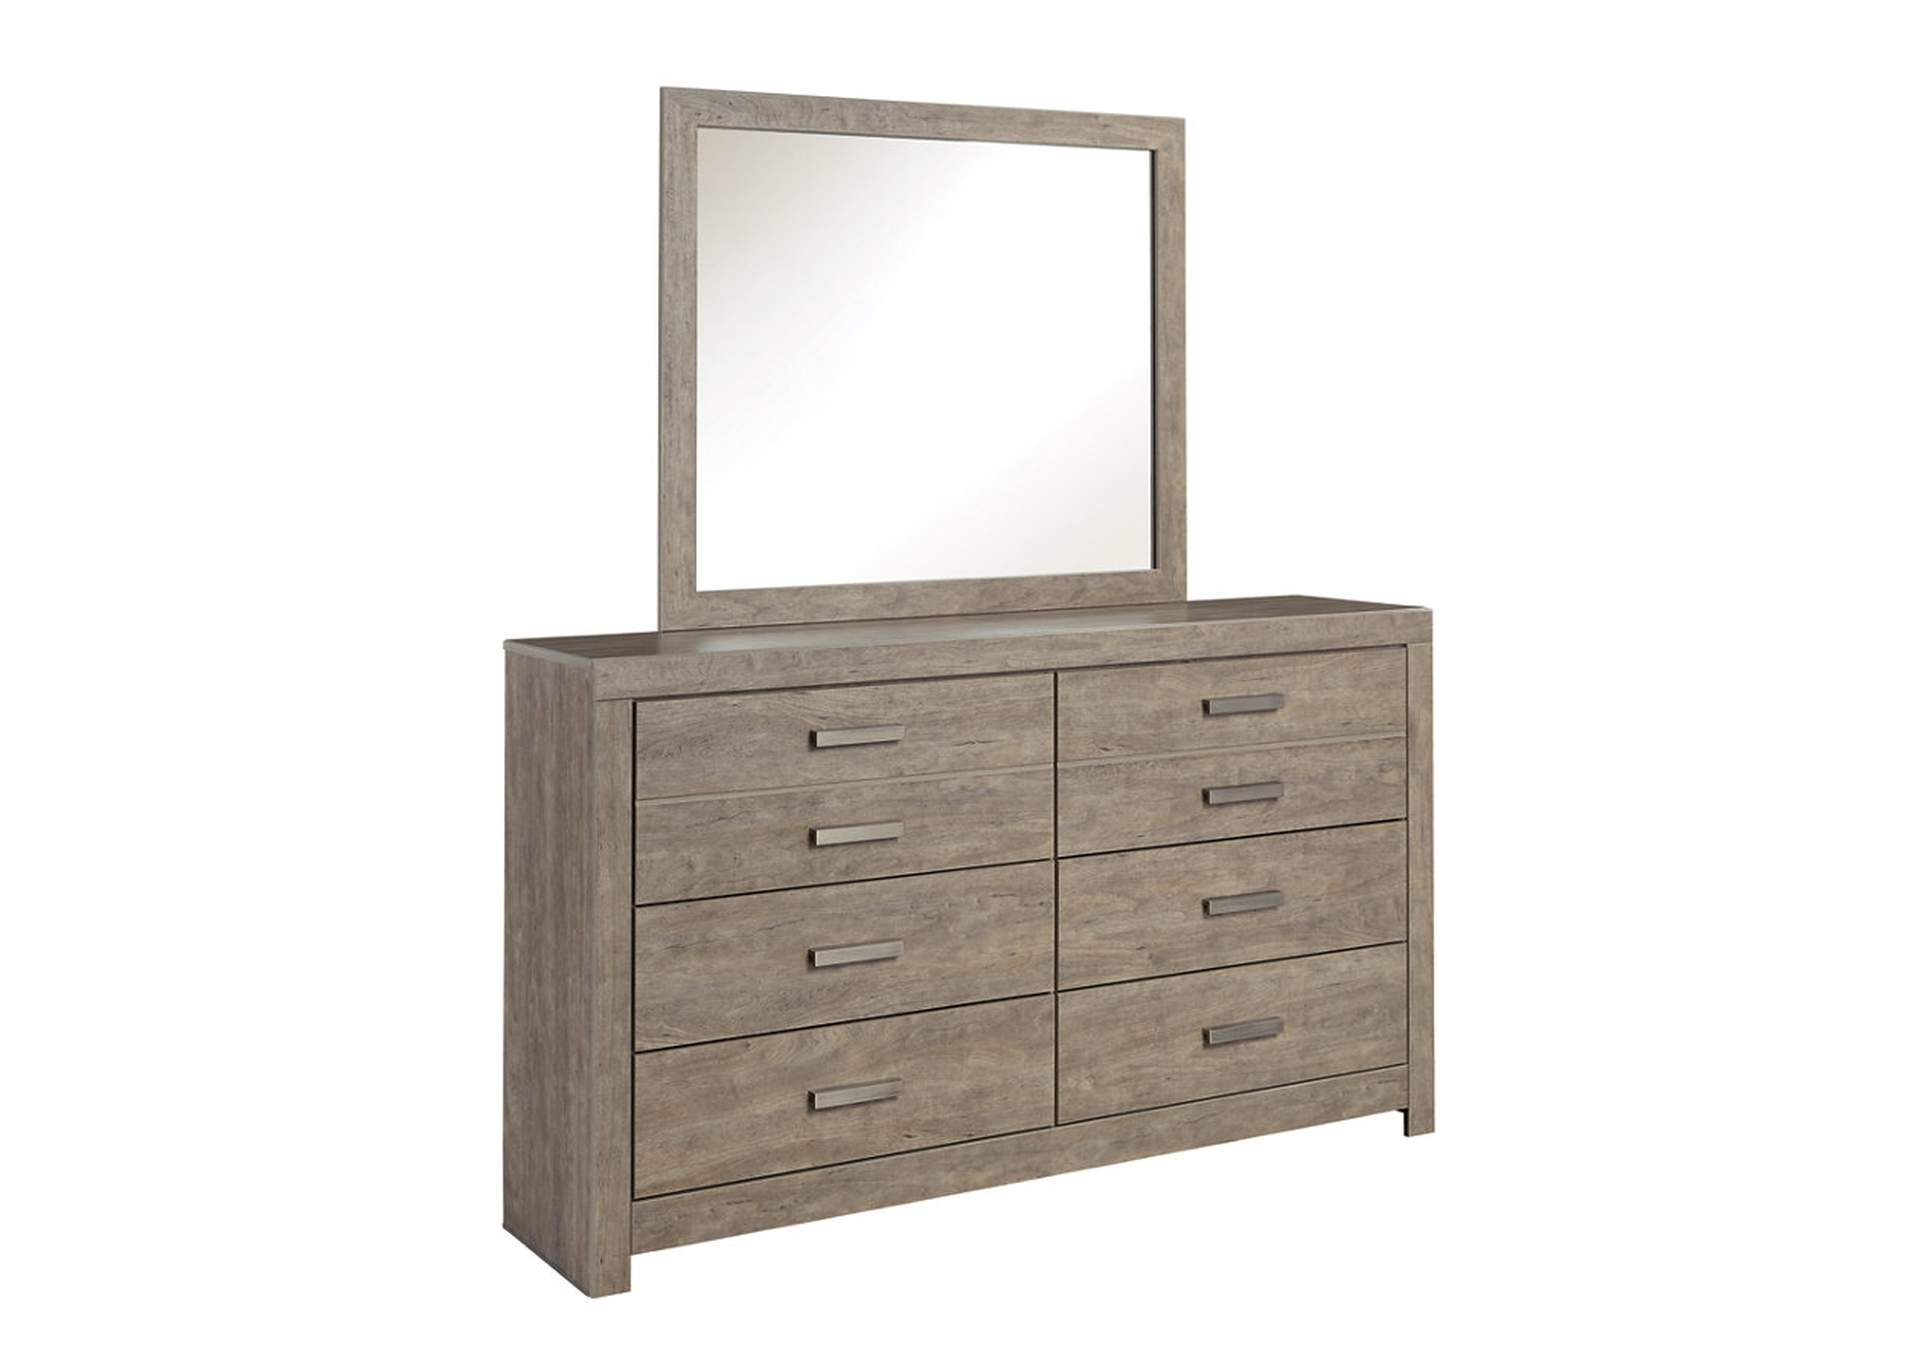 Culverbach Gray Bedroom Mirror,ABF Signature Design by Ashley